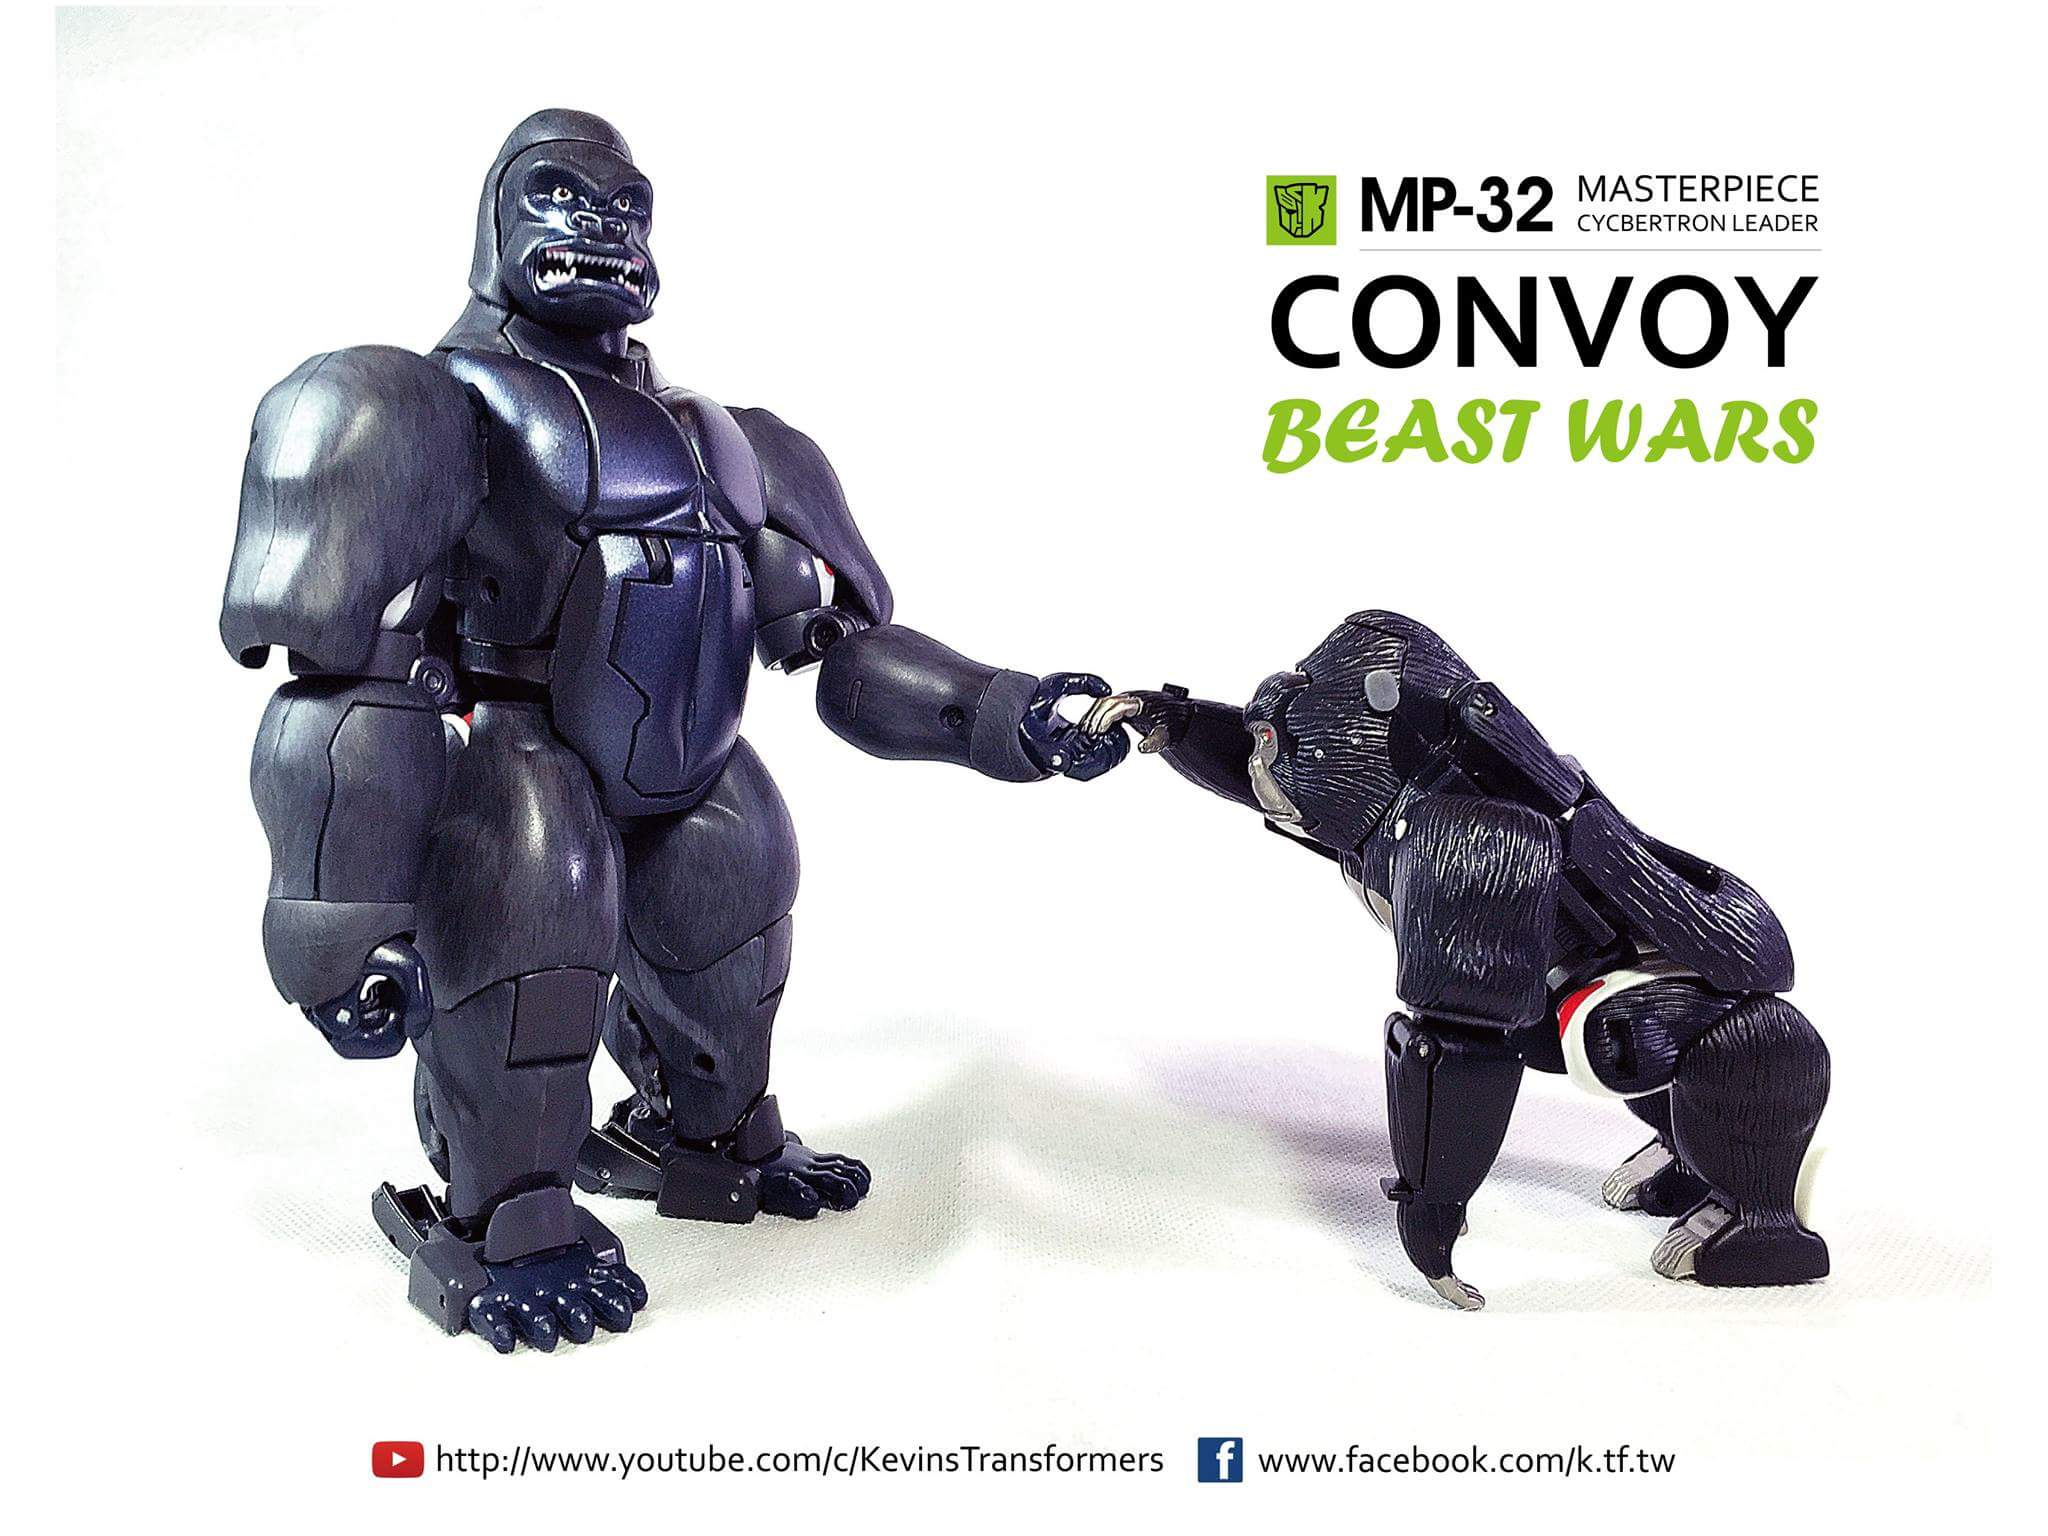 [Masterpiece] MP-32, MP-38 Optimus Primal et MP-38+ Burning Convoy (Beast Wars) - Page 3 GroDA3n8